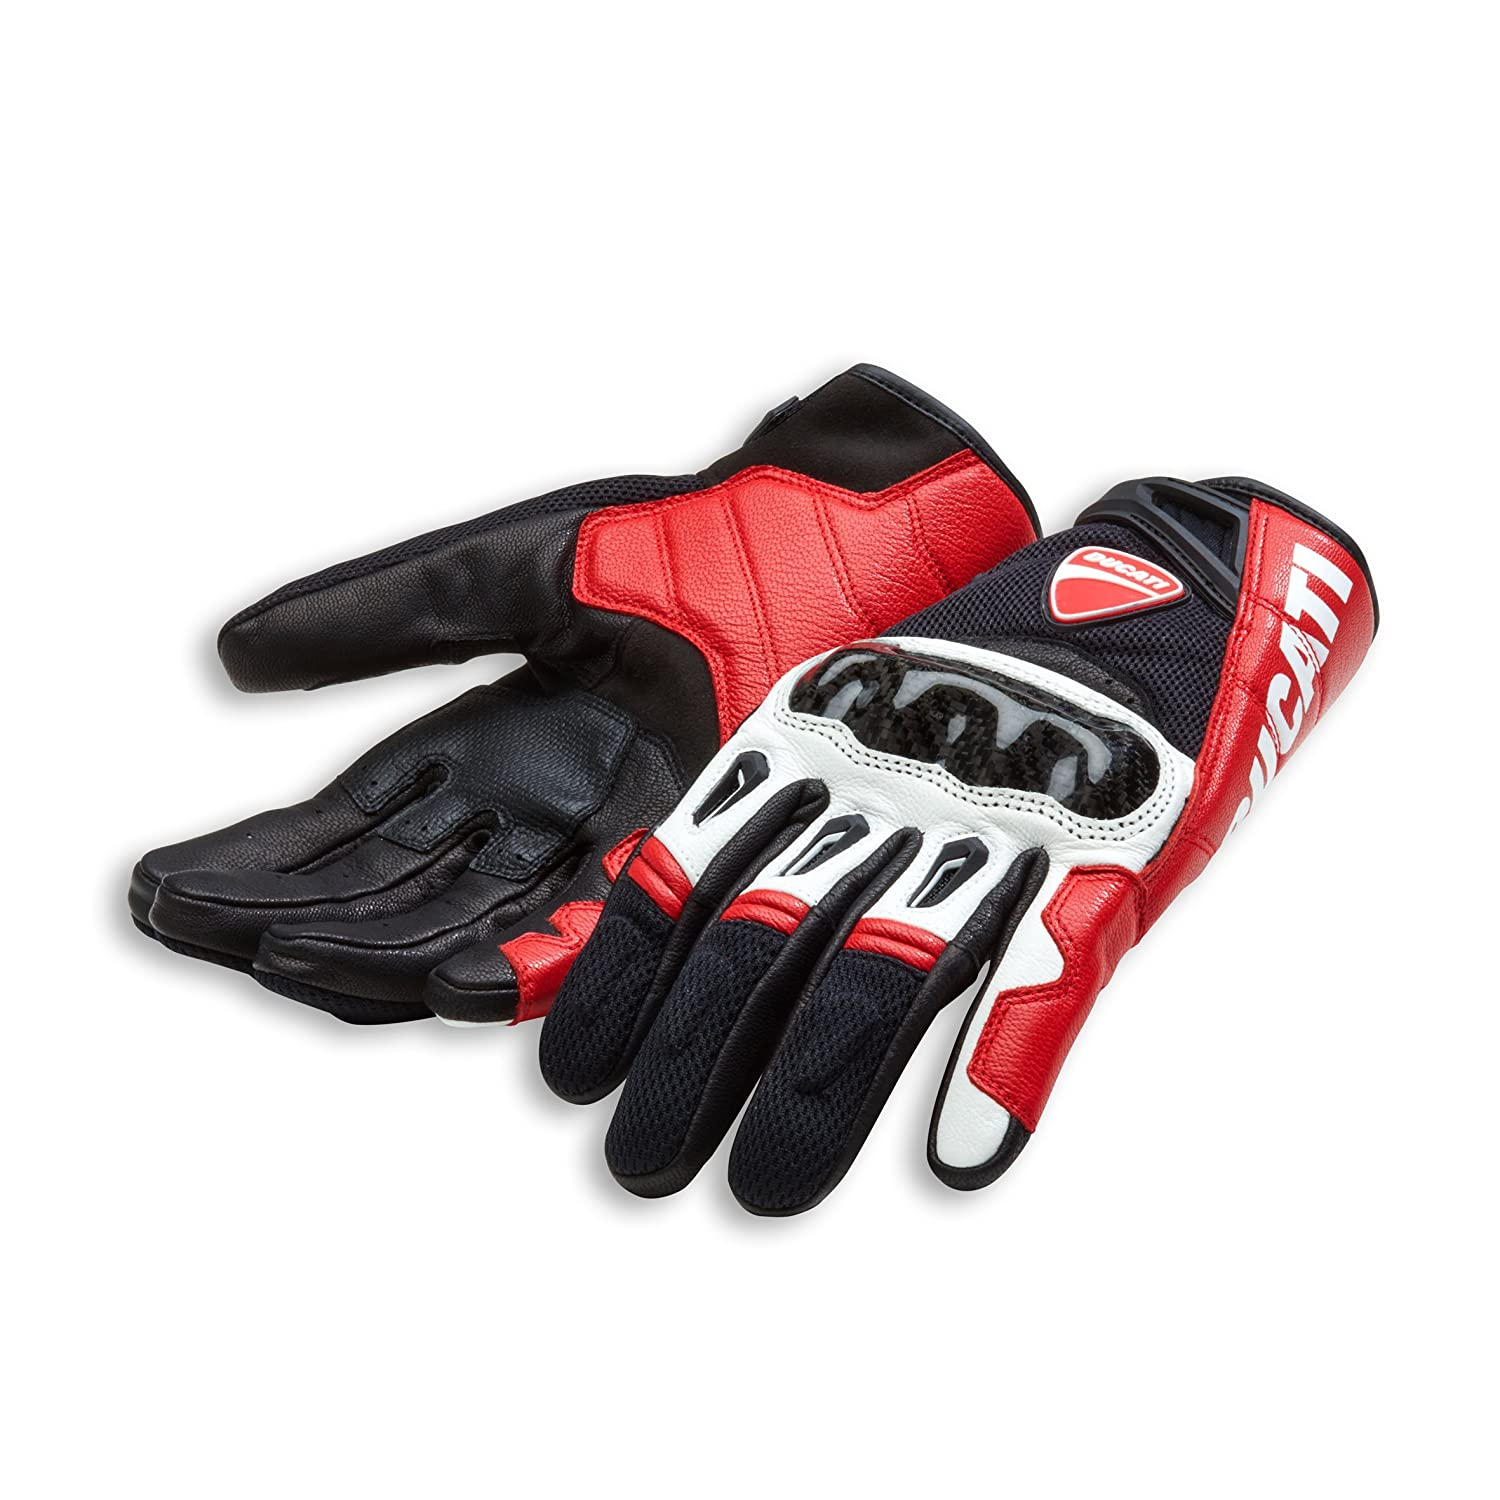 Ducati Company C1 Leather Motorcycle Gloves 3Xl, Red//Black